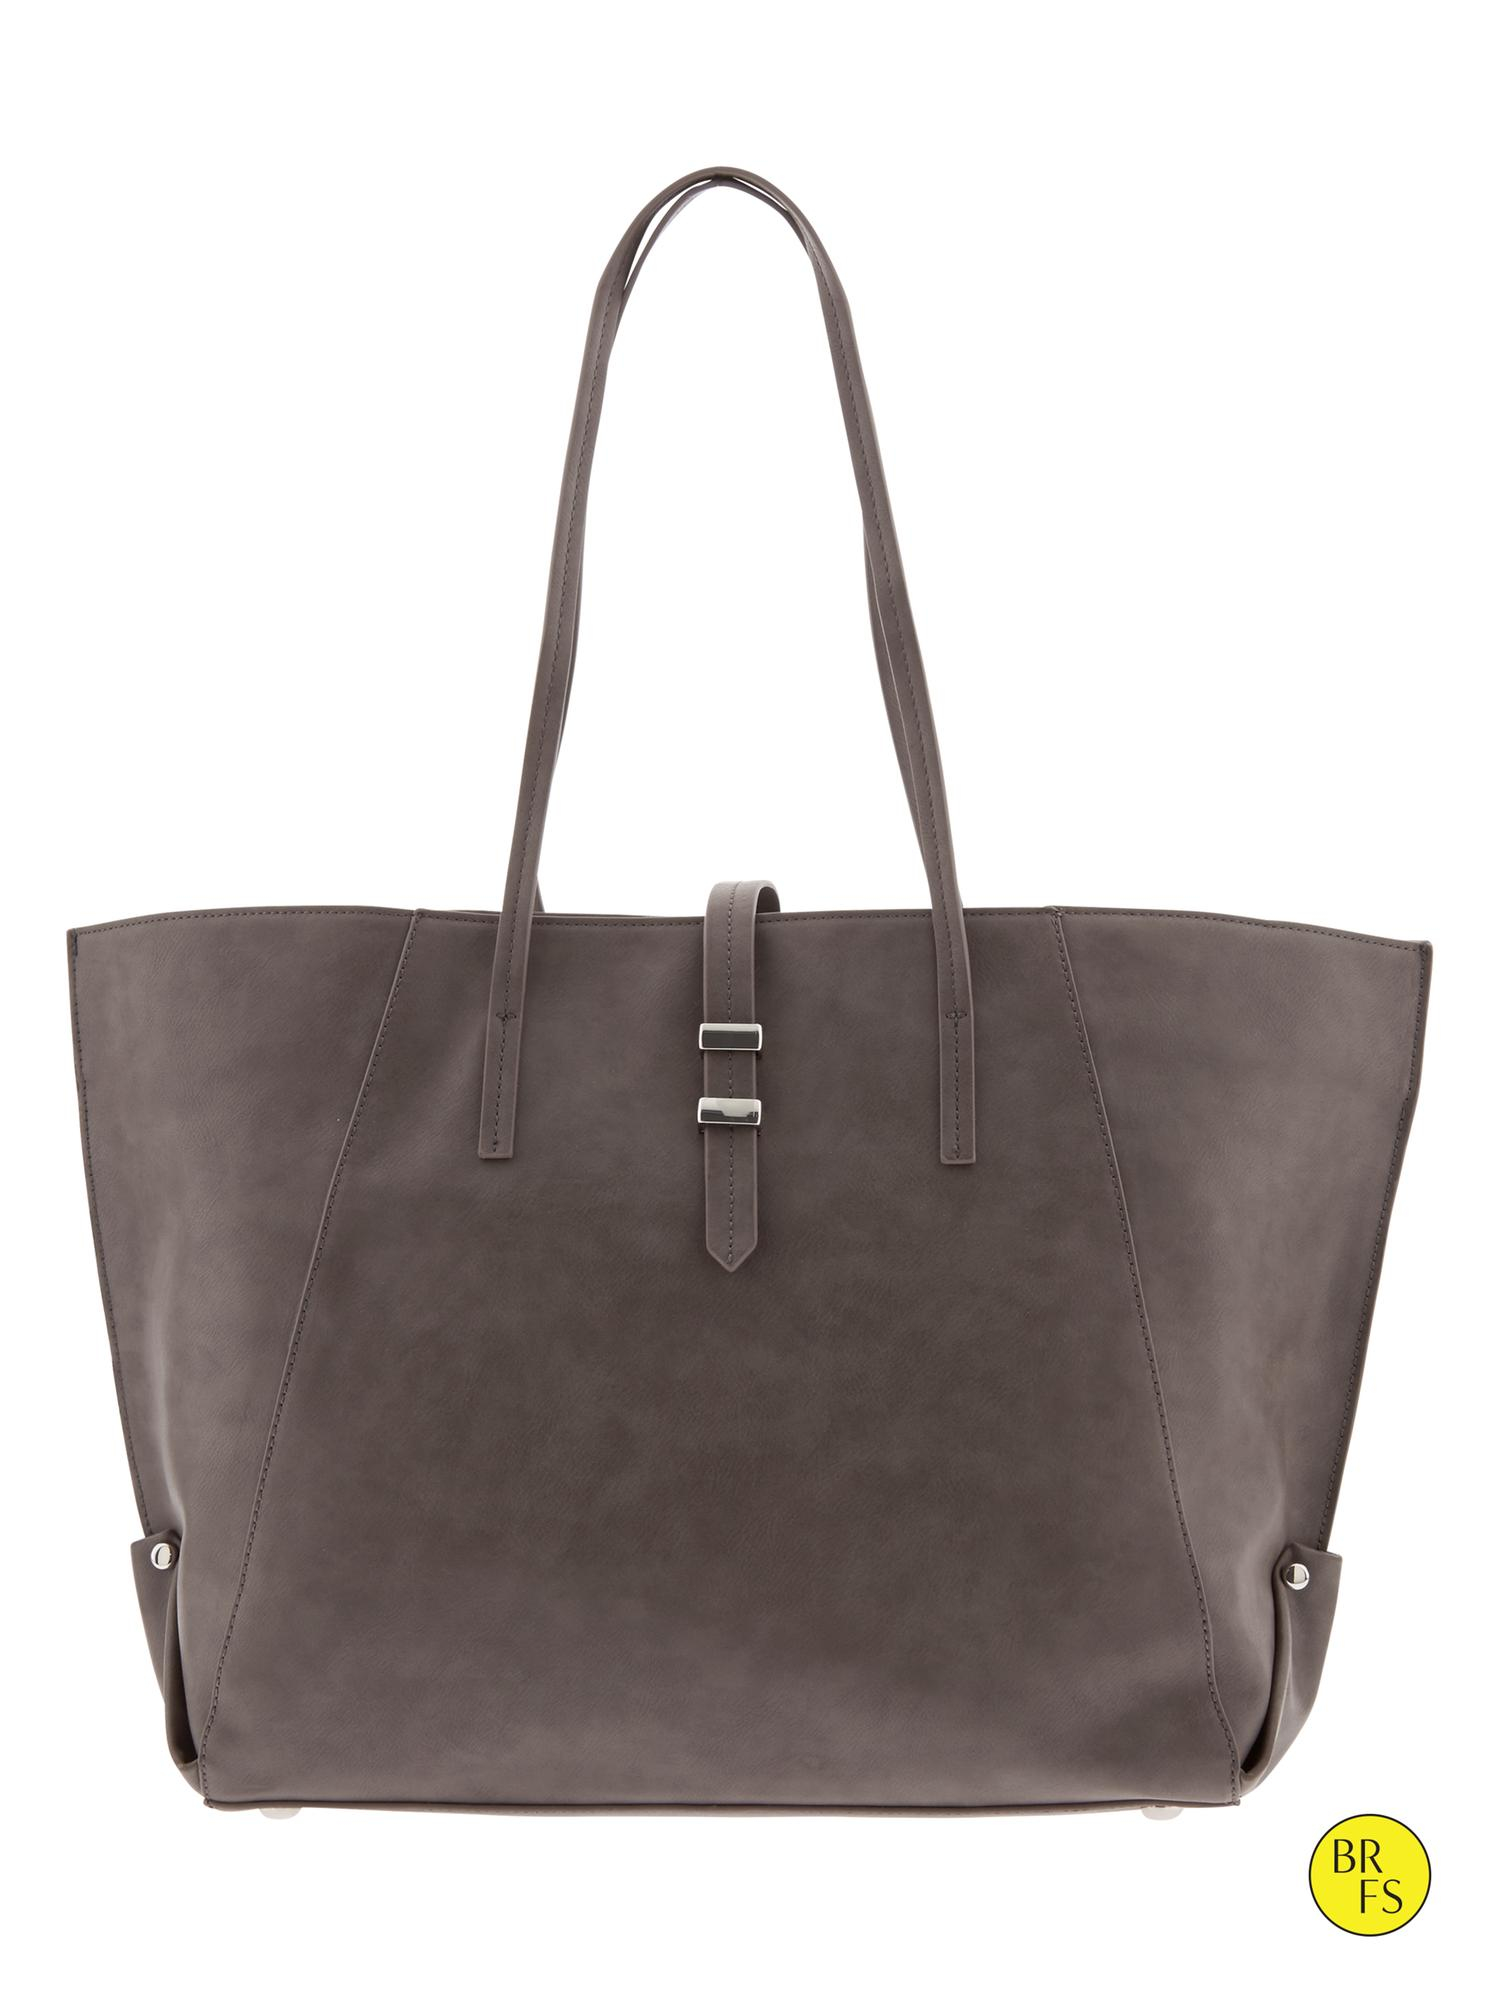 Banana Republic Factory Faux-Leather Tote in Gray (Light gray) | Lyst